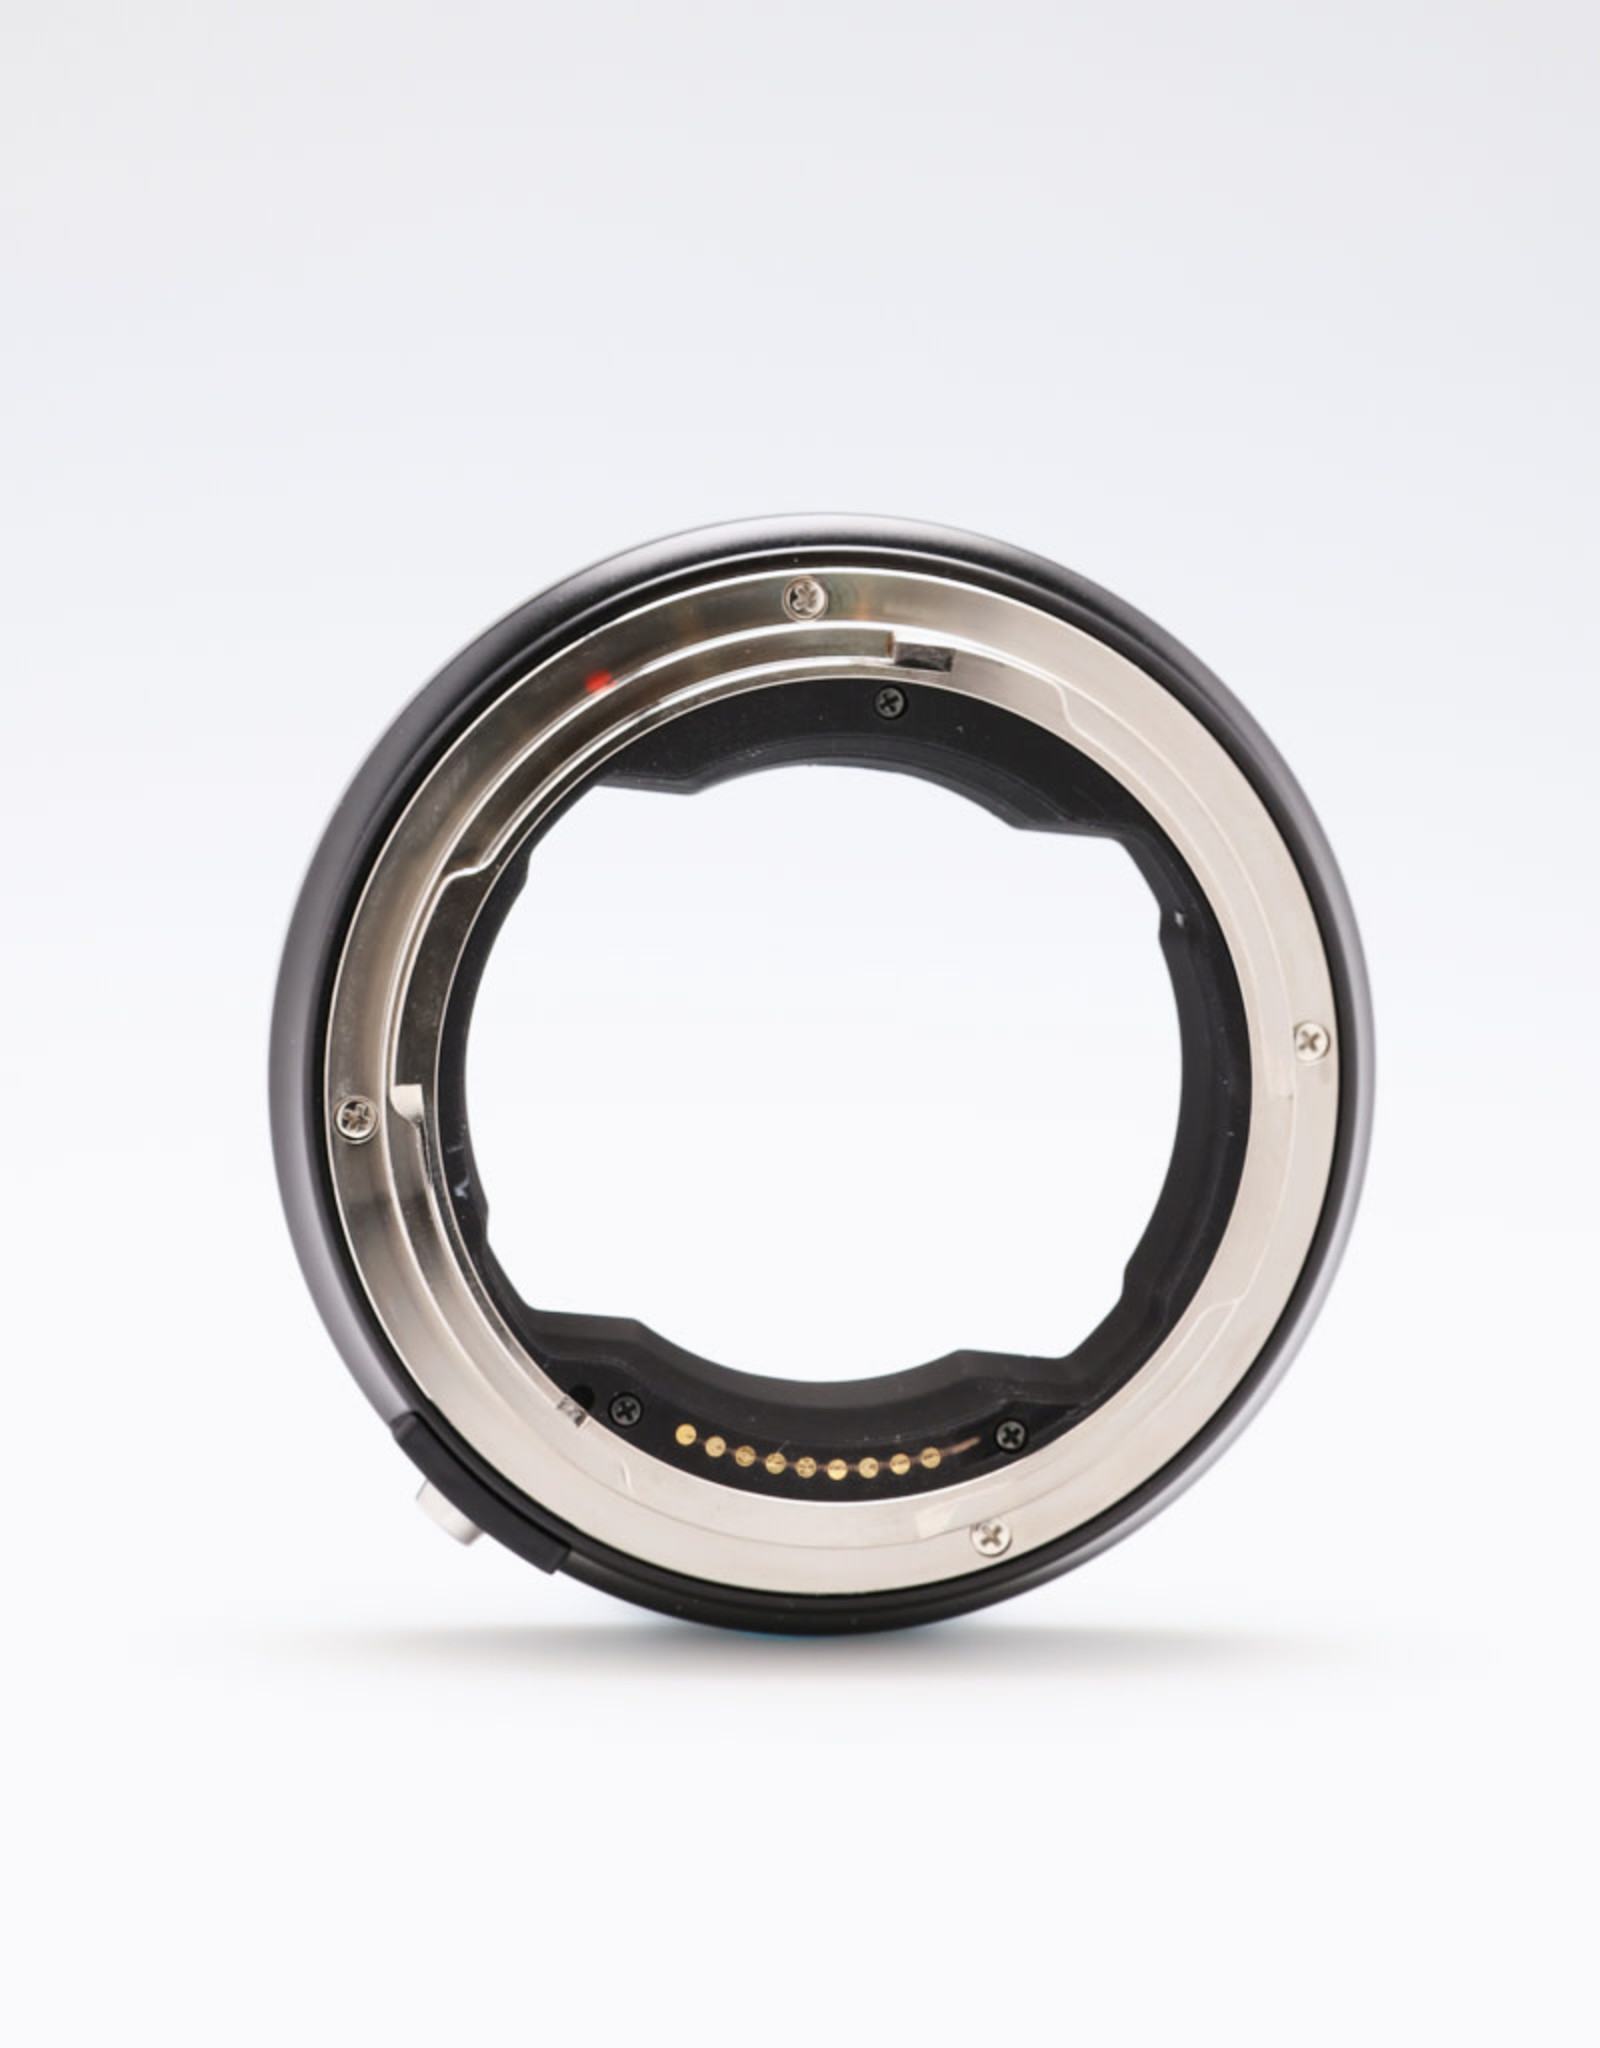 Hasselblad USED  Hasselblad H 13mm Extension Tube